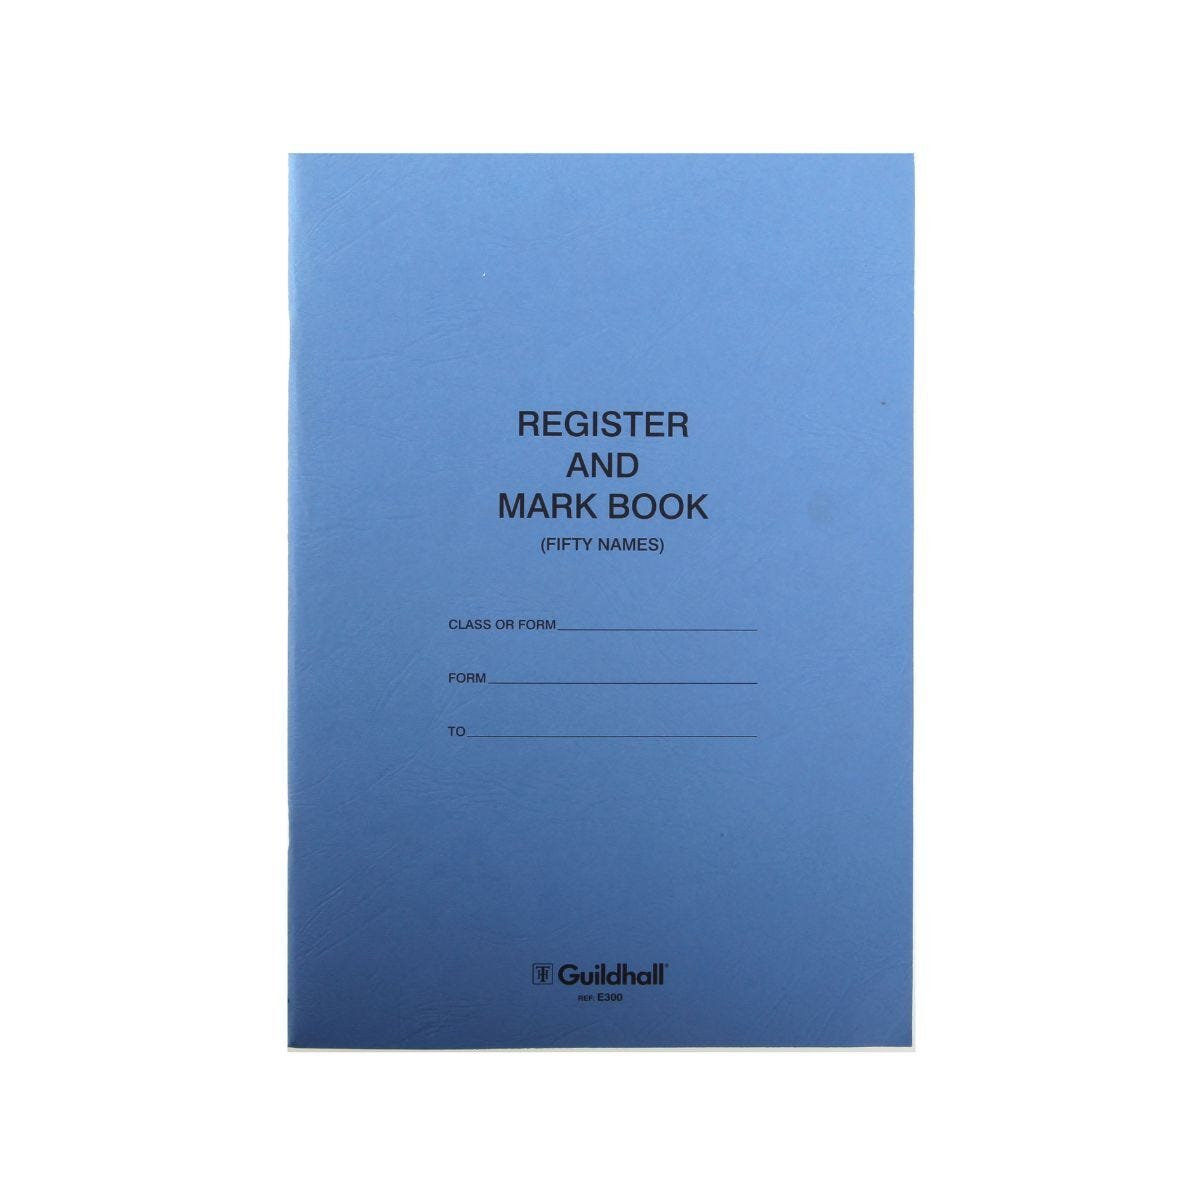 Guildhall Register and Mark Book